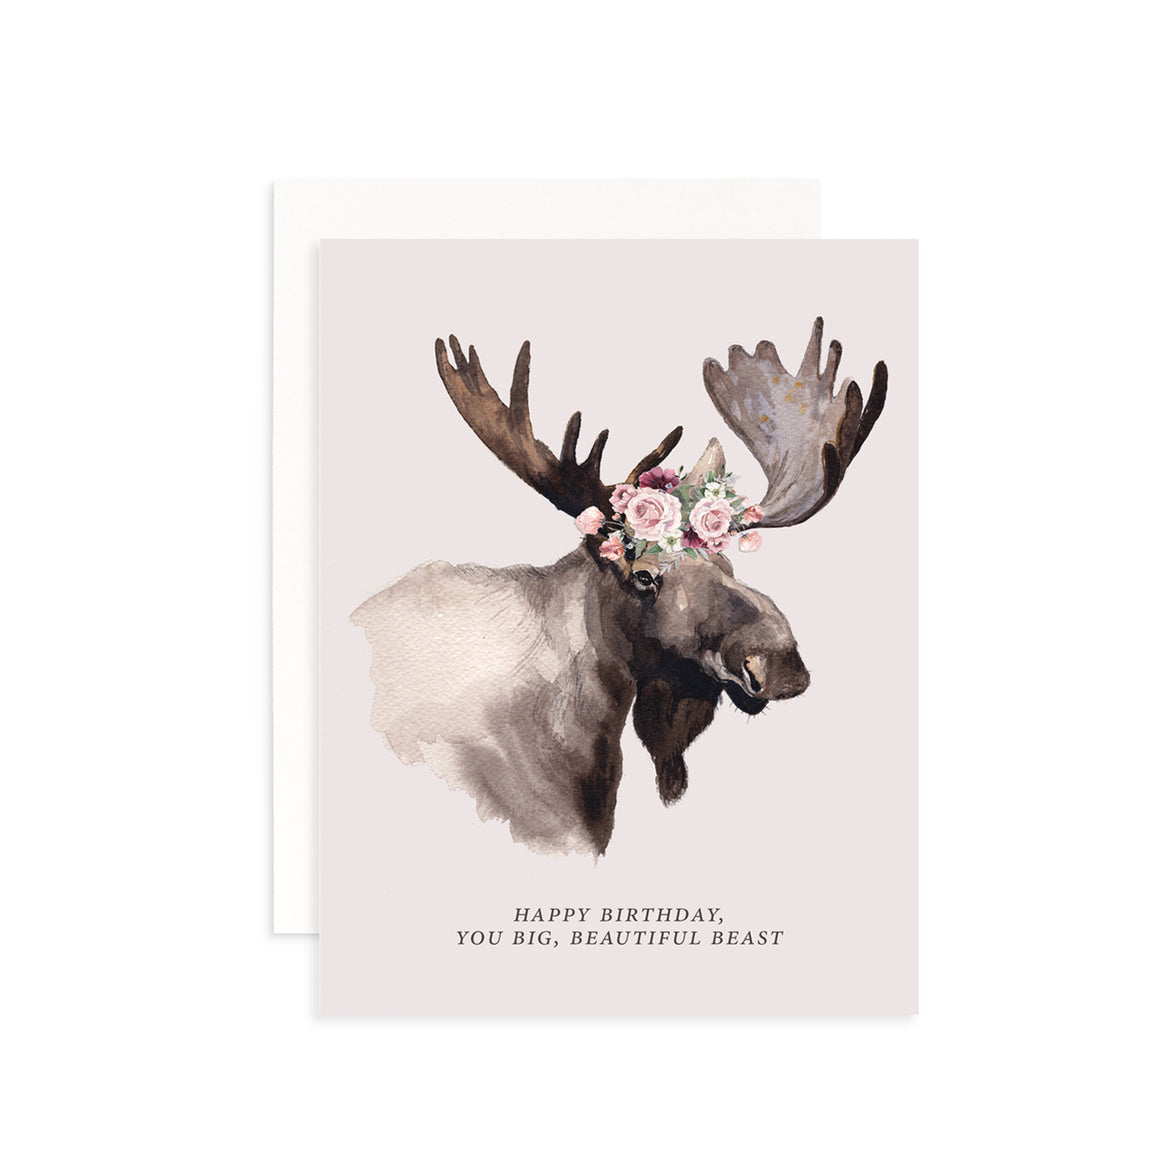 Big, Beautiful Beast Greeting Card